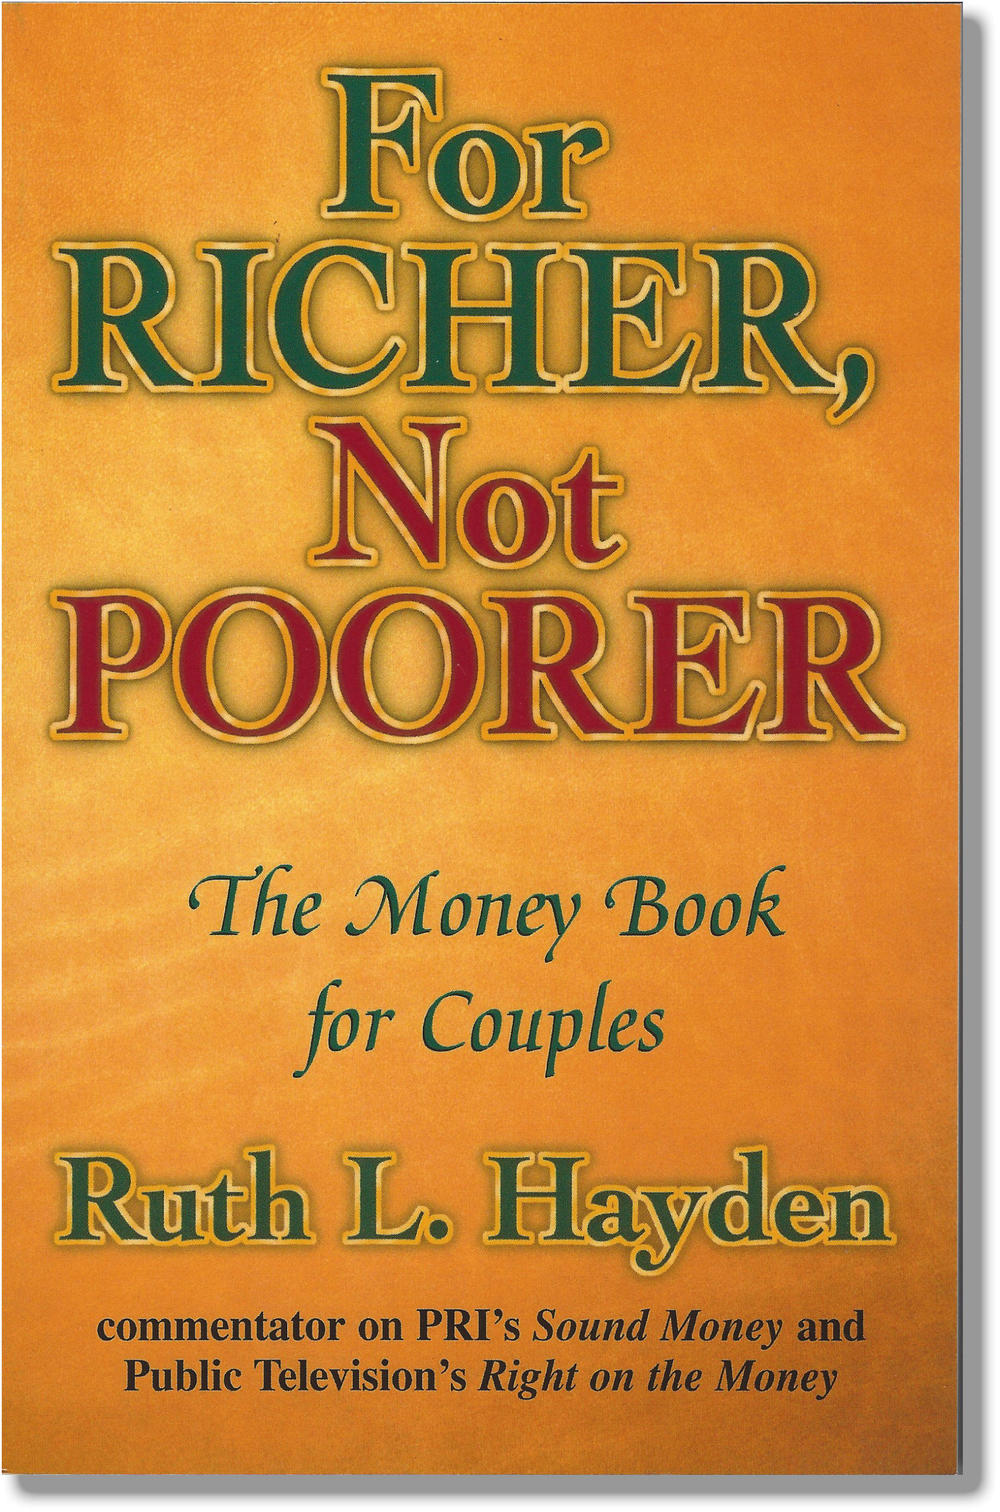 For Richer, Not Poorer